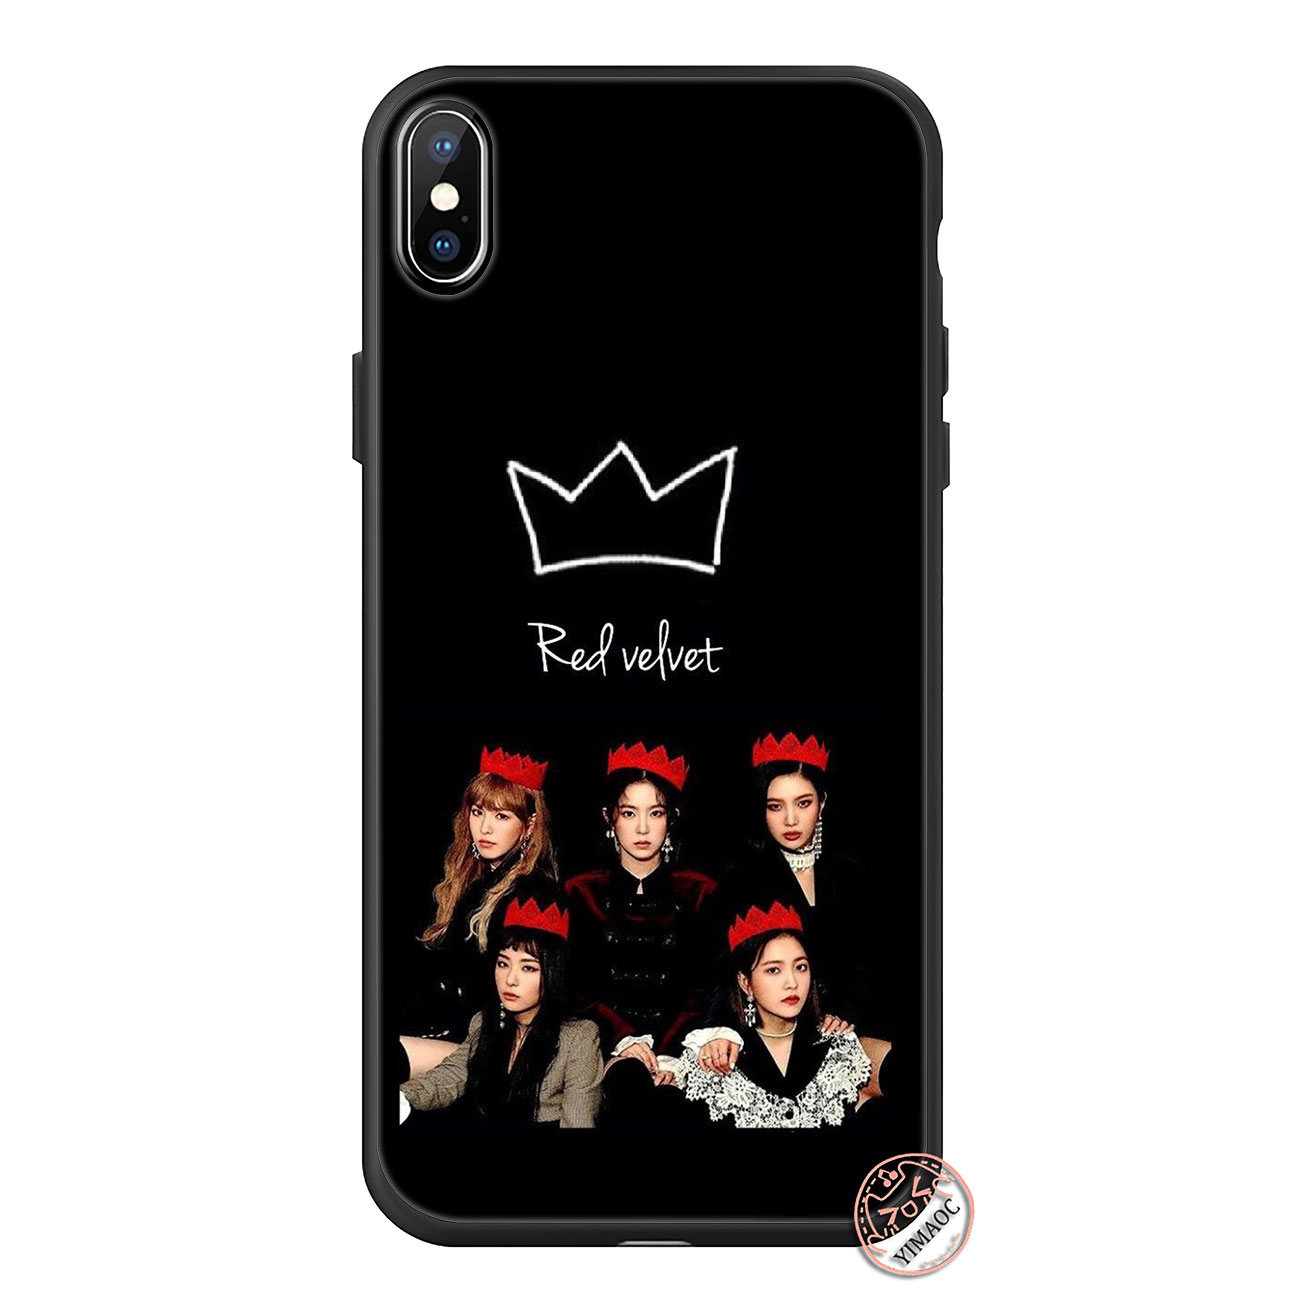 reputable site 8947b f11de US $2.48 17% OFF|YIMAOC Red Velvet Irene SeulGi Soft Silicone Phone Case  for iPhone XS Max XR X 6 6S 7 8 Plus 5 5S SE 10 TPU Black Cover-in Fitted  ...